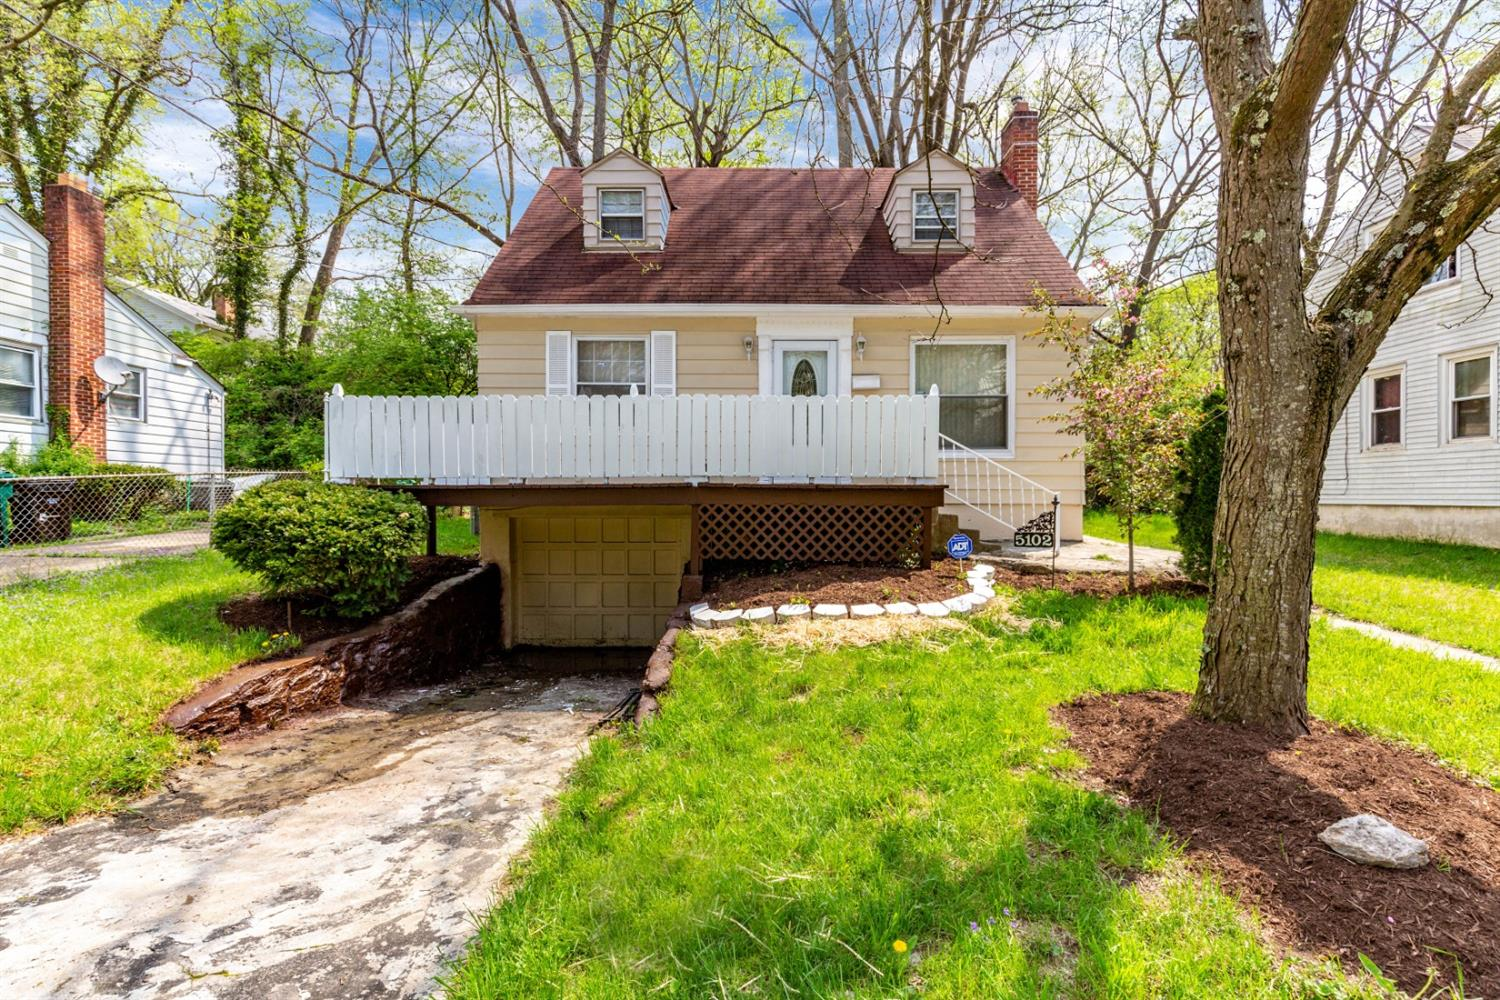 Photo 1 for 5102 Ebersole Ave Madisonville, OH 45227